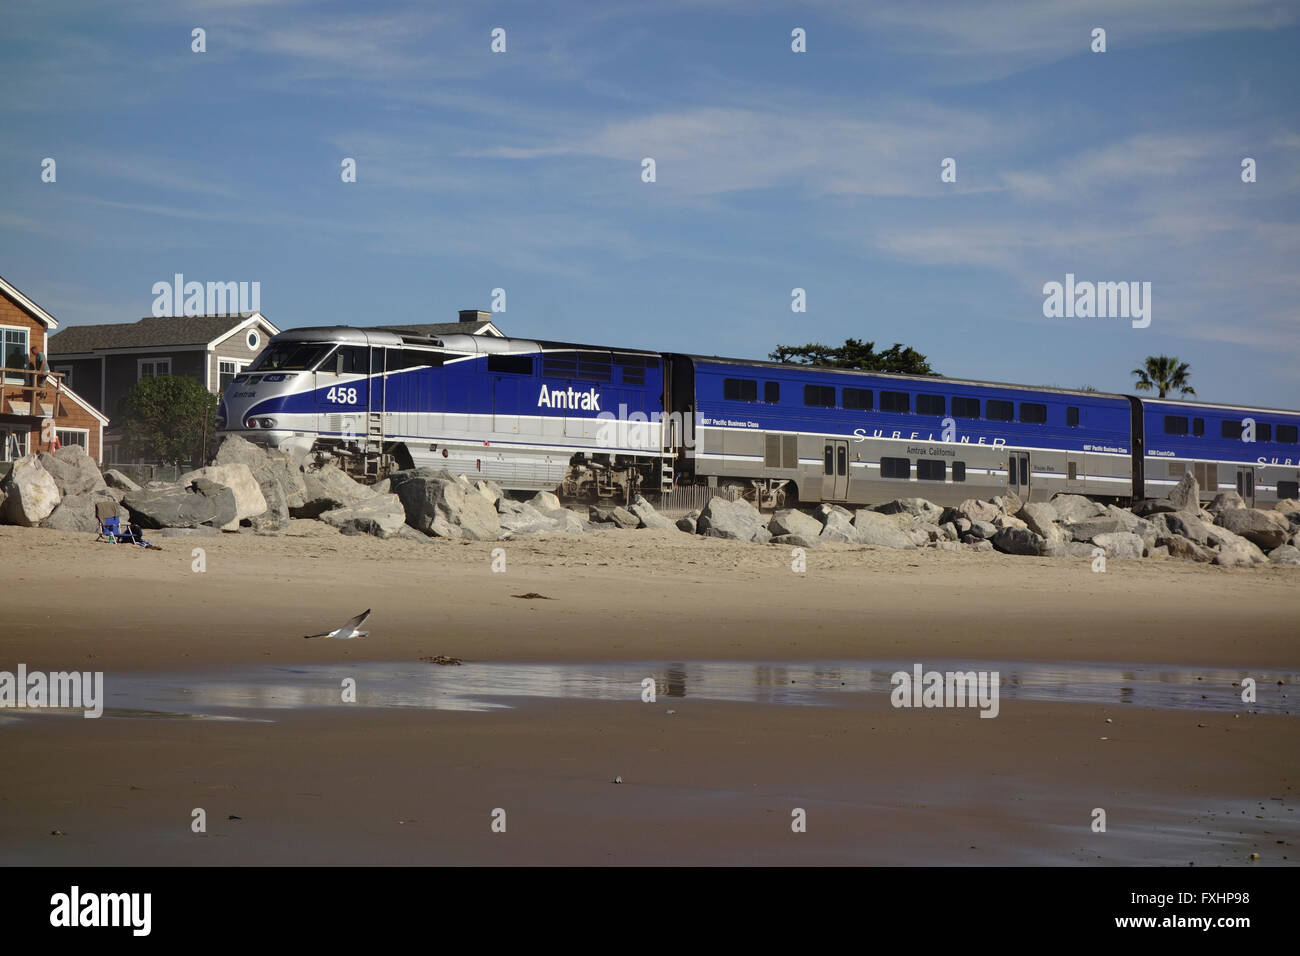 Amtrak Surfliner railroad locomotive on tracks along Pacific Ocean coast near Carpinteria in Southern California,United - Stock Image